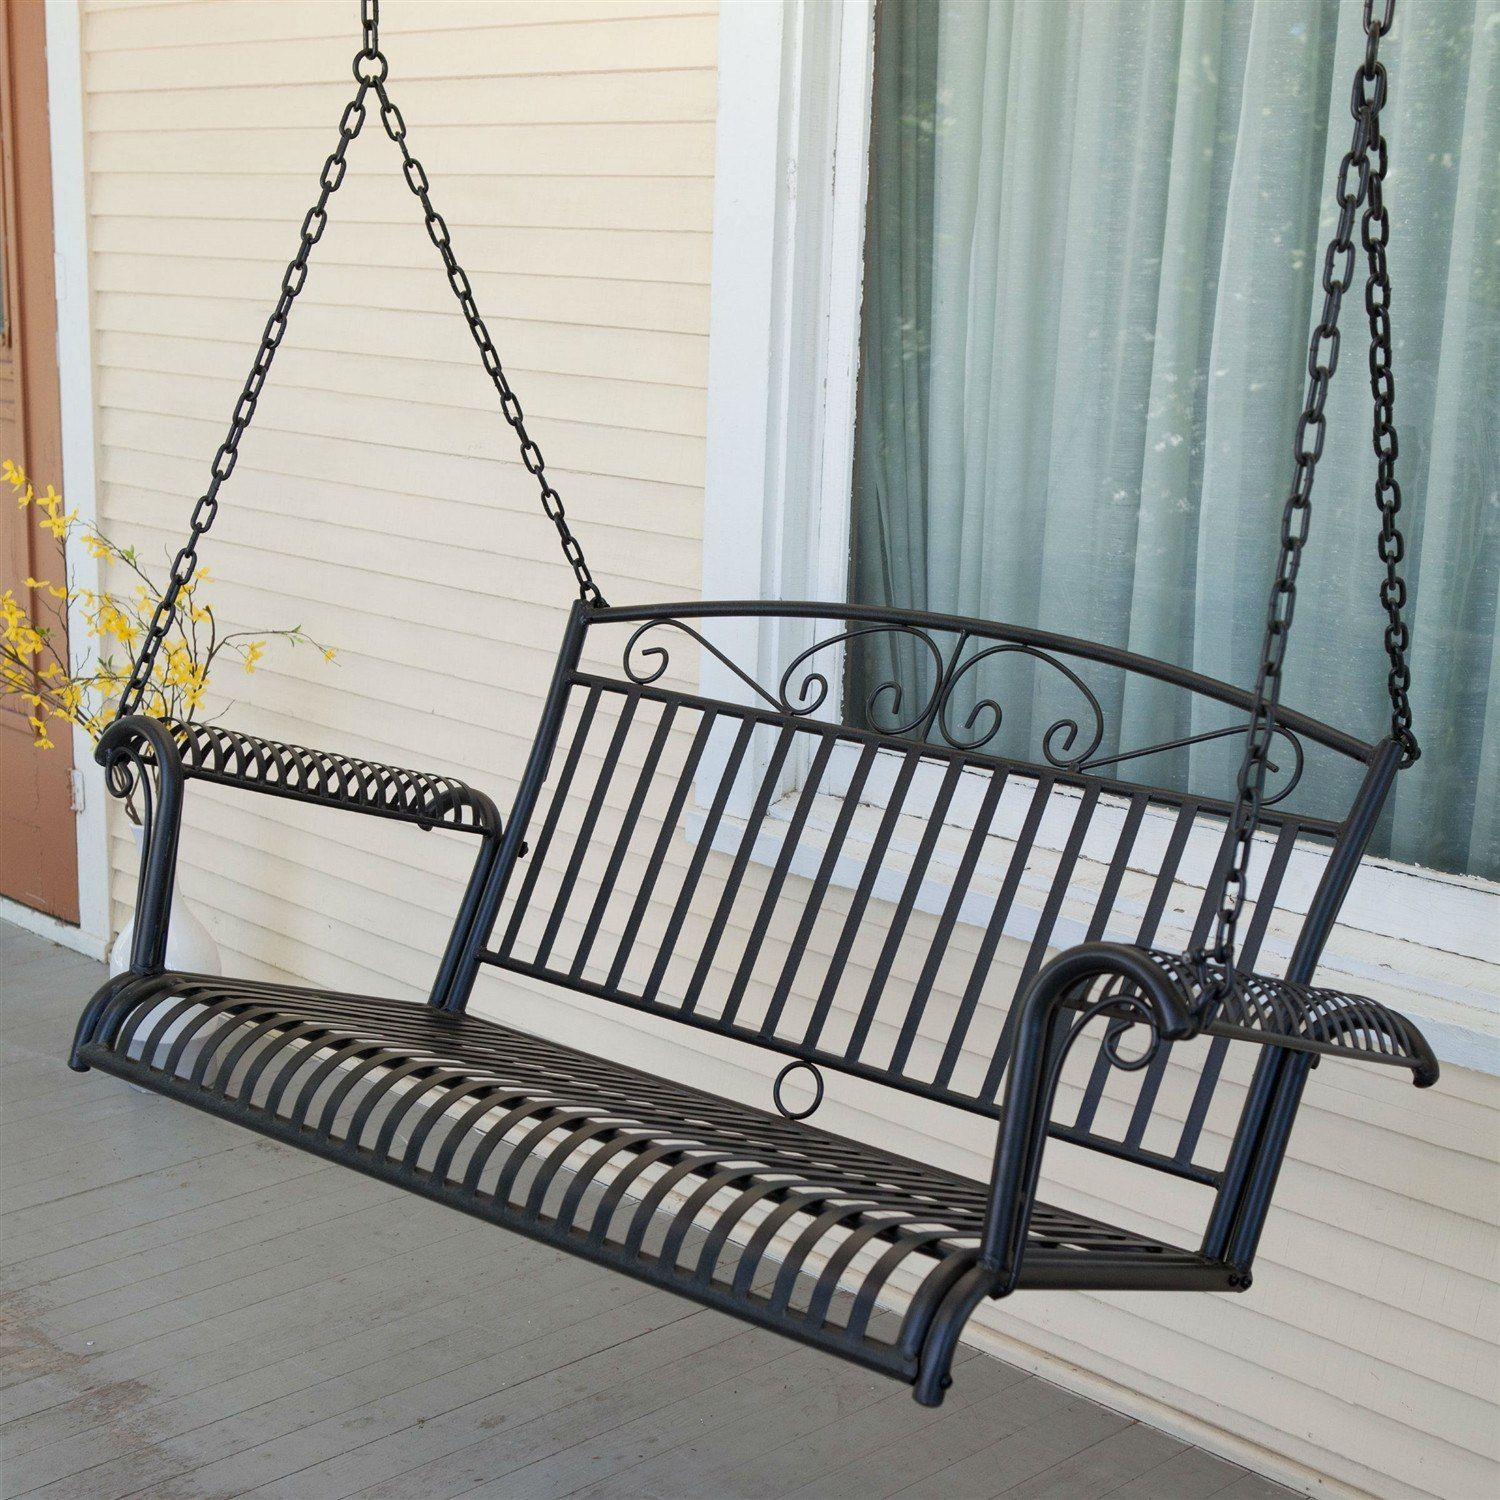 Wrought Iron Outdoor Patio 4 Ft Porch Swing In Black | Porch Intended For 2 Person Hammered Bronze Iron Outdoor Swings (Image 25 of 25)